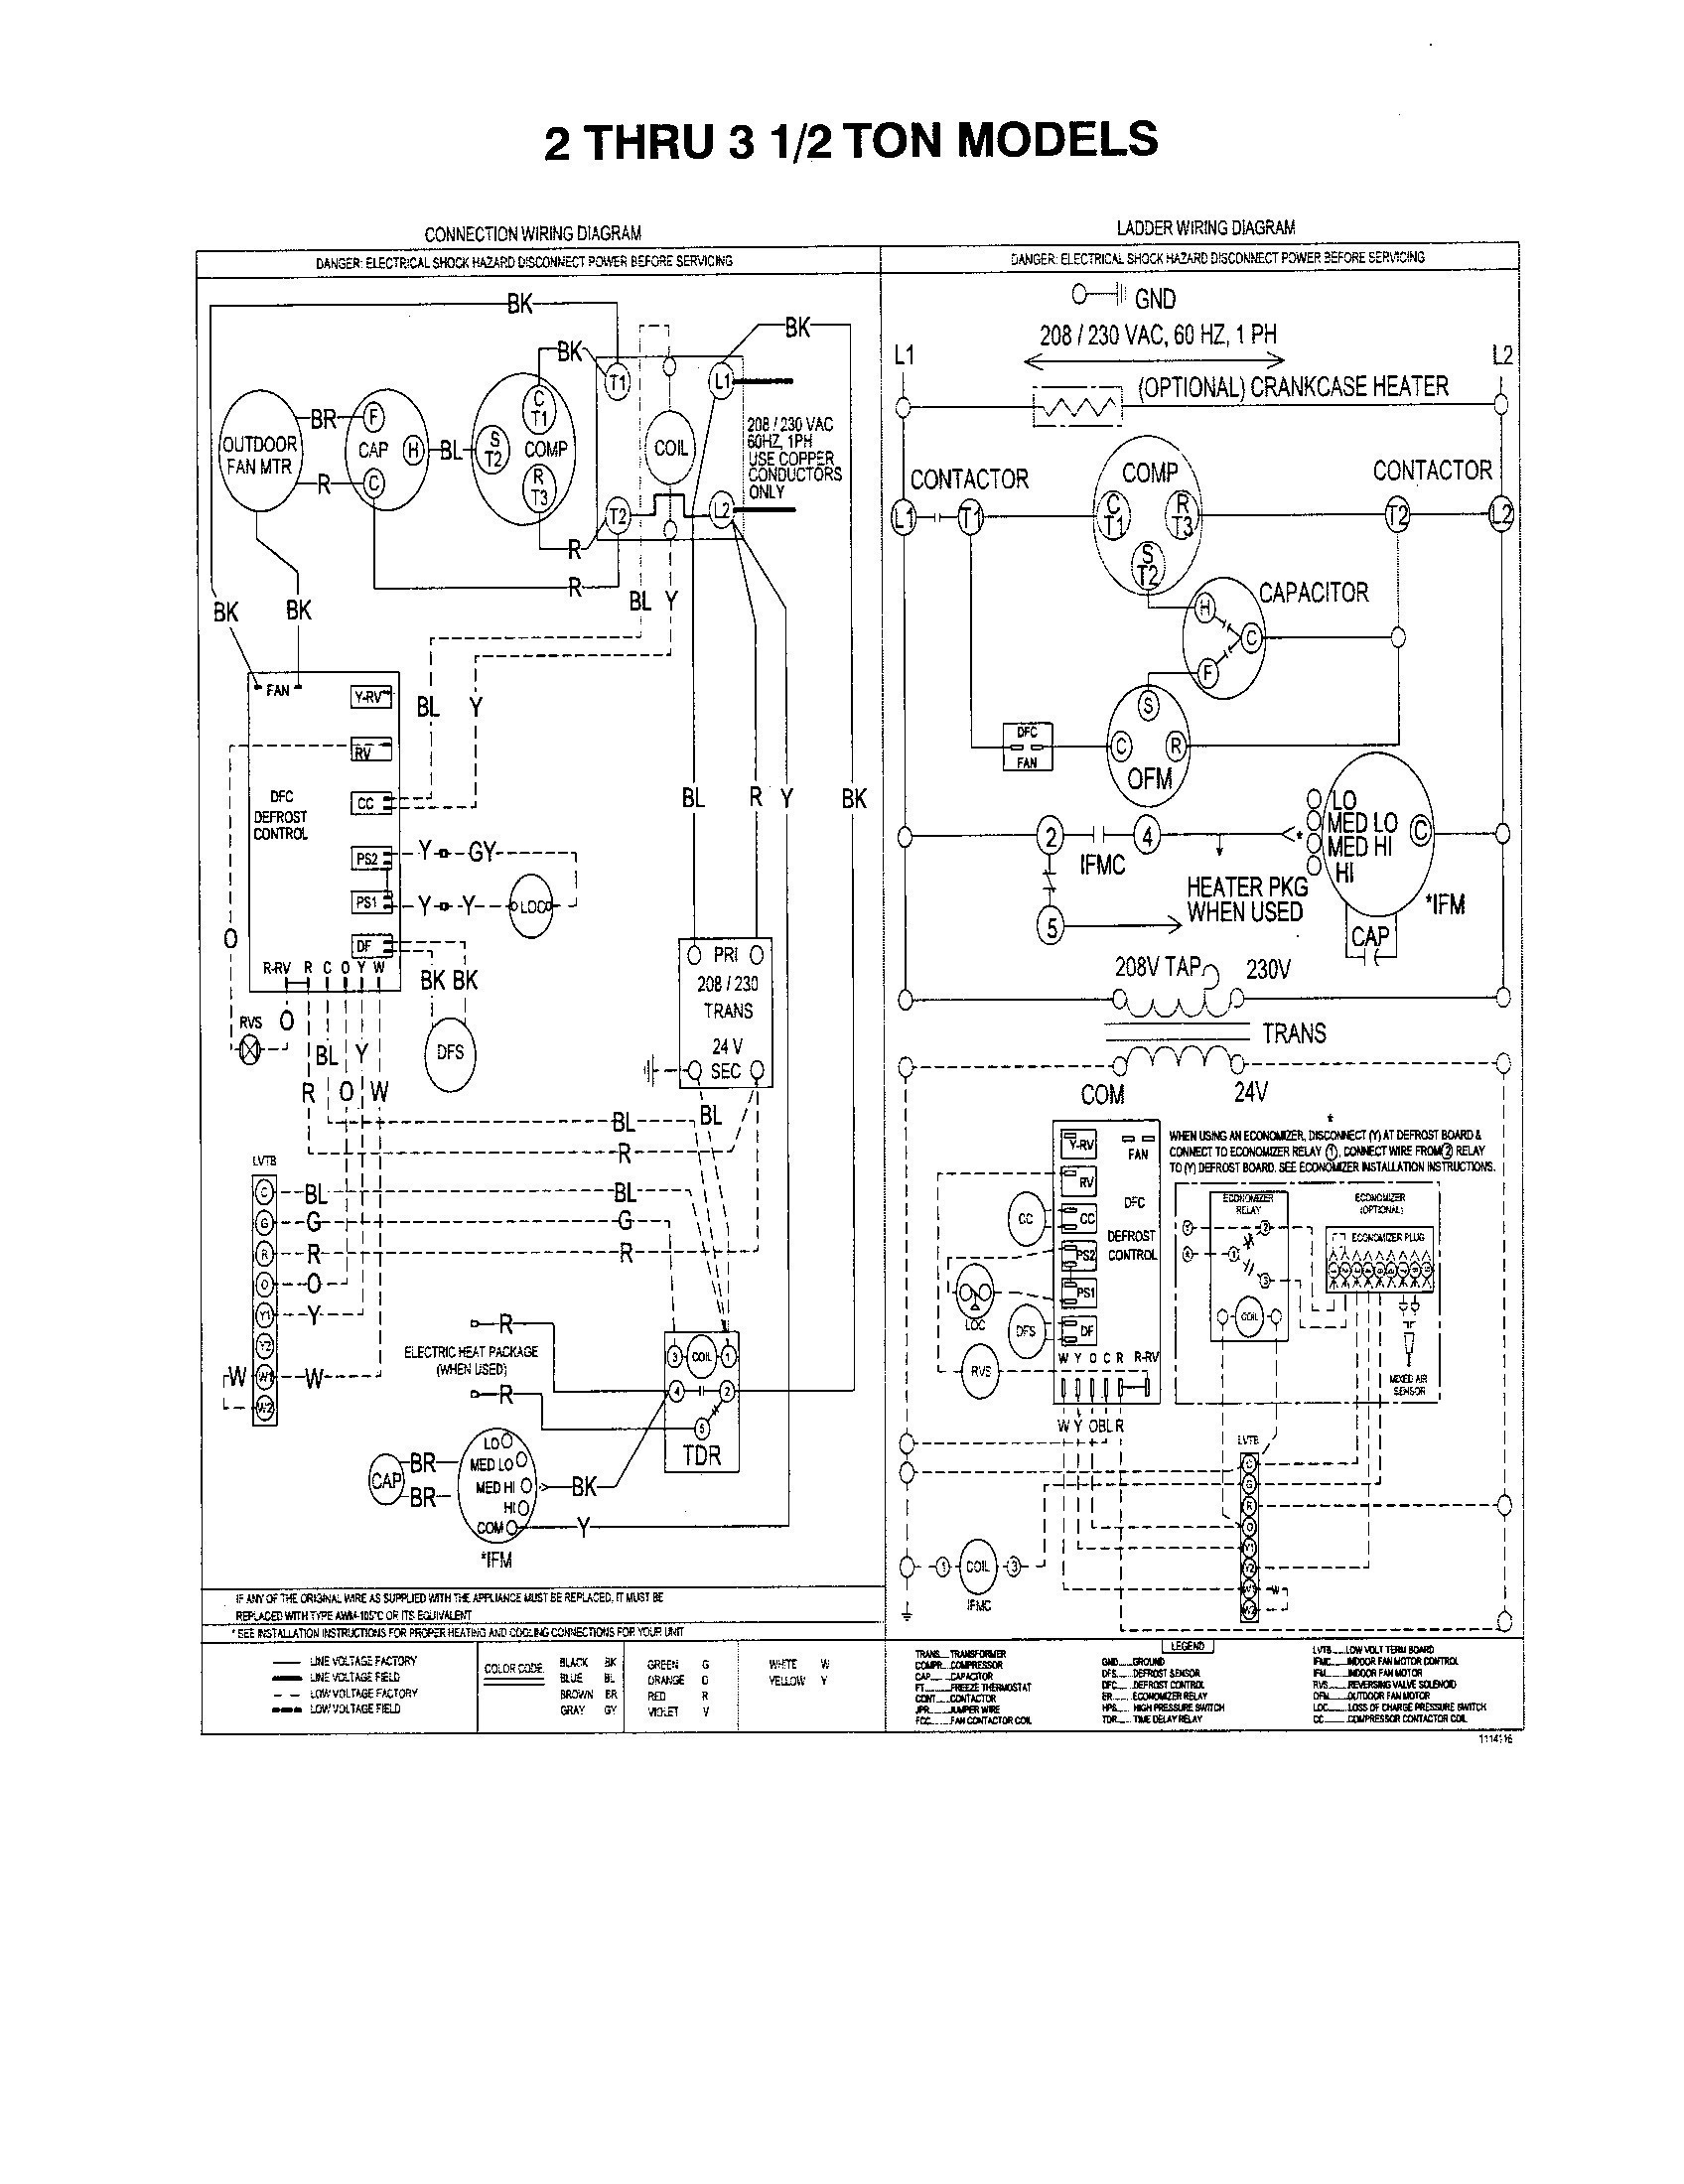 york rooftop unit wiring diagram Download-Wiring Diagram for York Air Conditioner Save Wiring Diagram Ac York Valid Wiring Diagram Package Ac 17-e